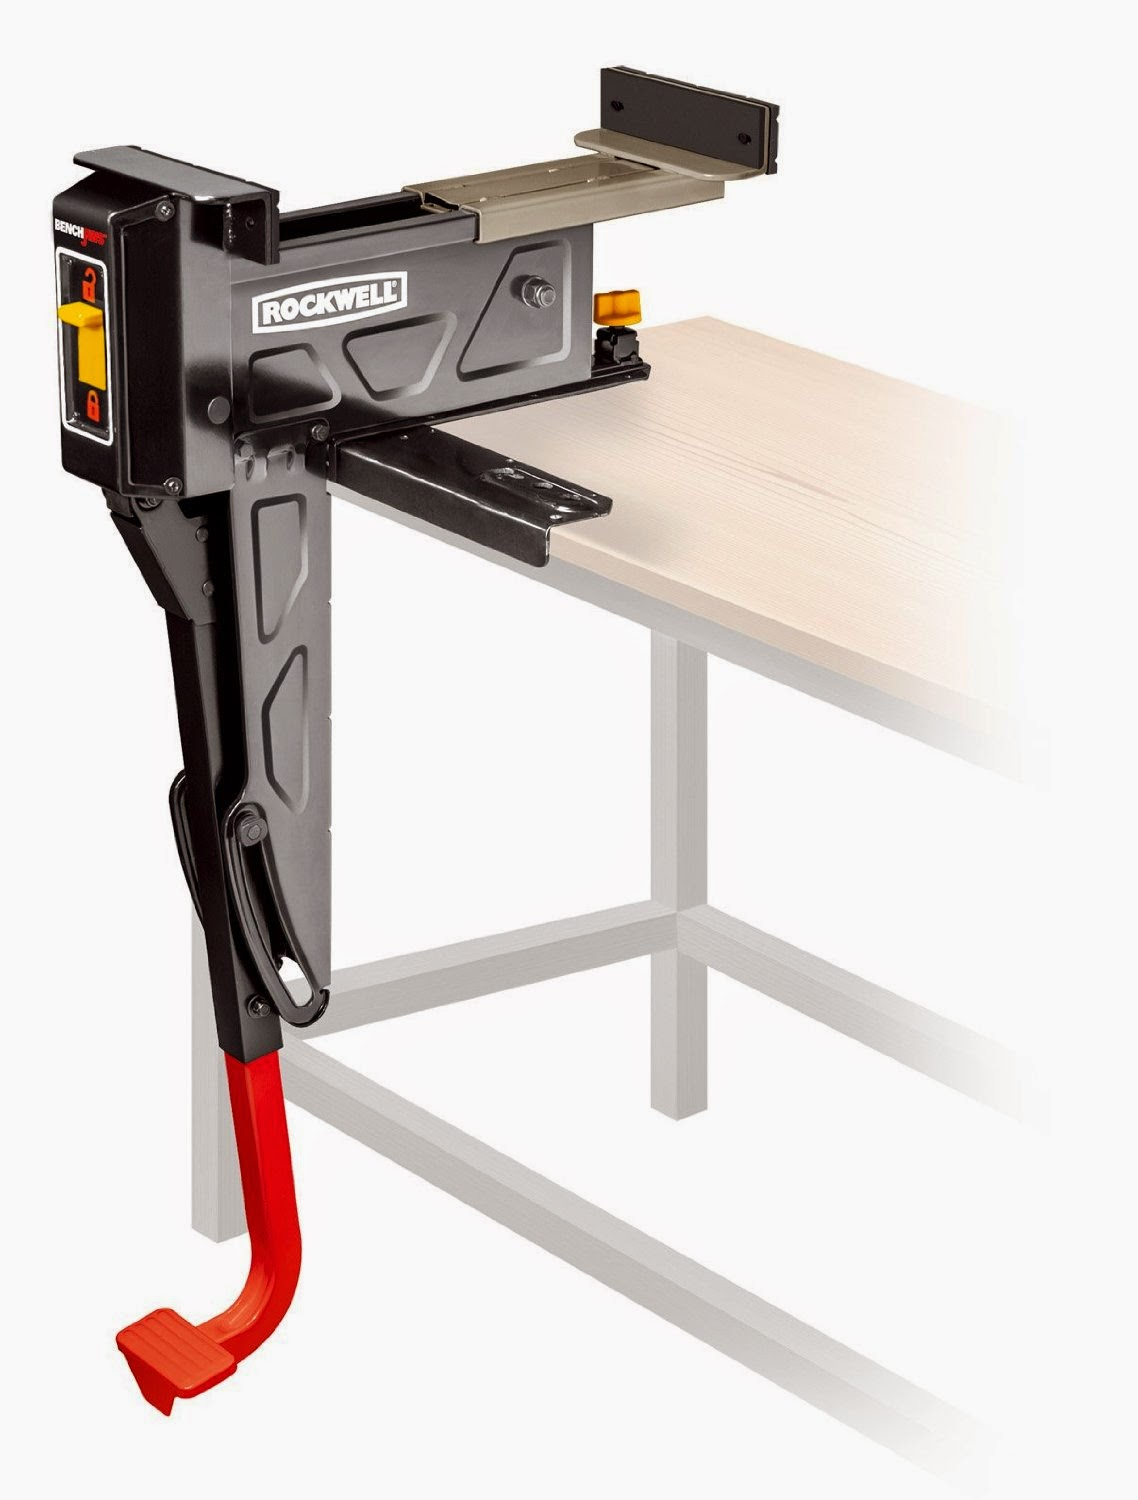 Surprising Coupons For Rockwell Rk9000 Jawhorse Jawhorse And Bench Dog Caraccident5 Cool Chair Designs And Ideas Caraccident5Info